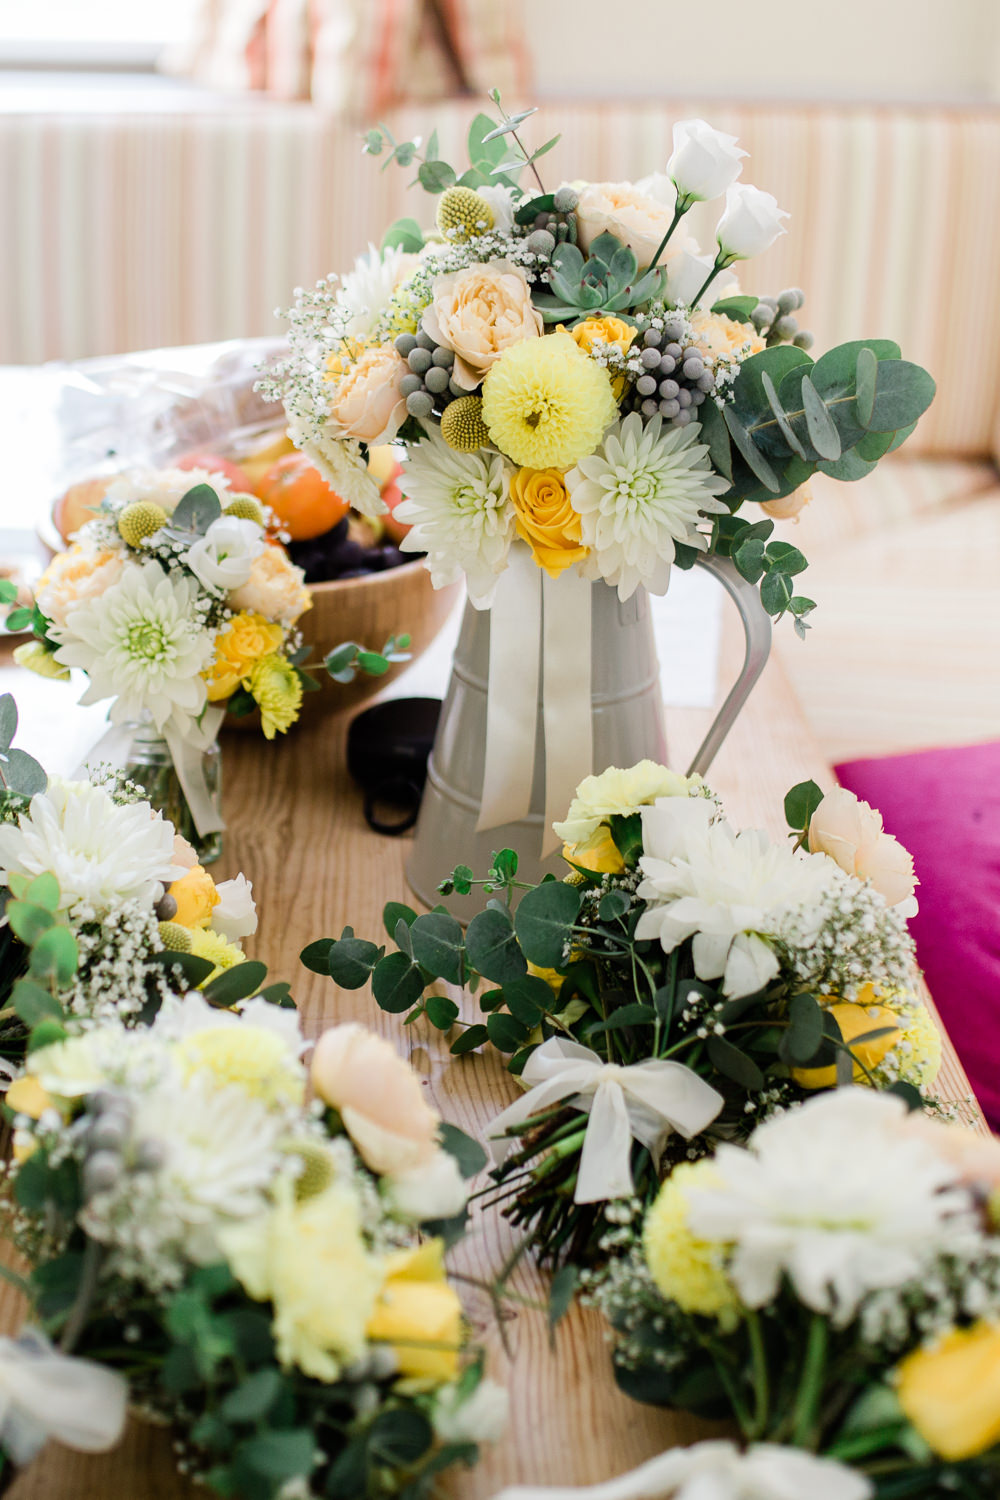 Flowers Floral Yellow White Galvanised Metal Jug Eucalyptus Creative Summer Wedding Gemma Giorgio Photography